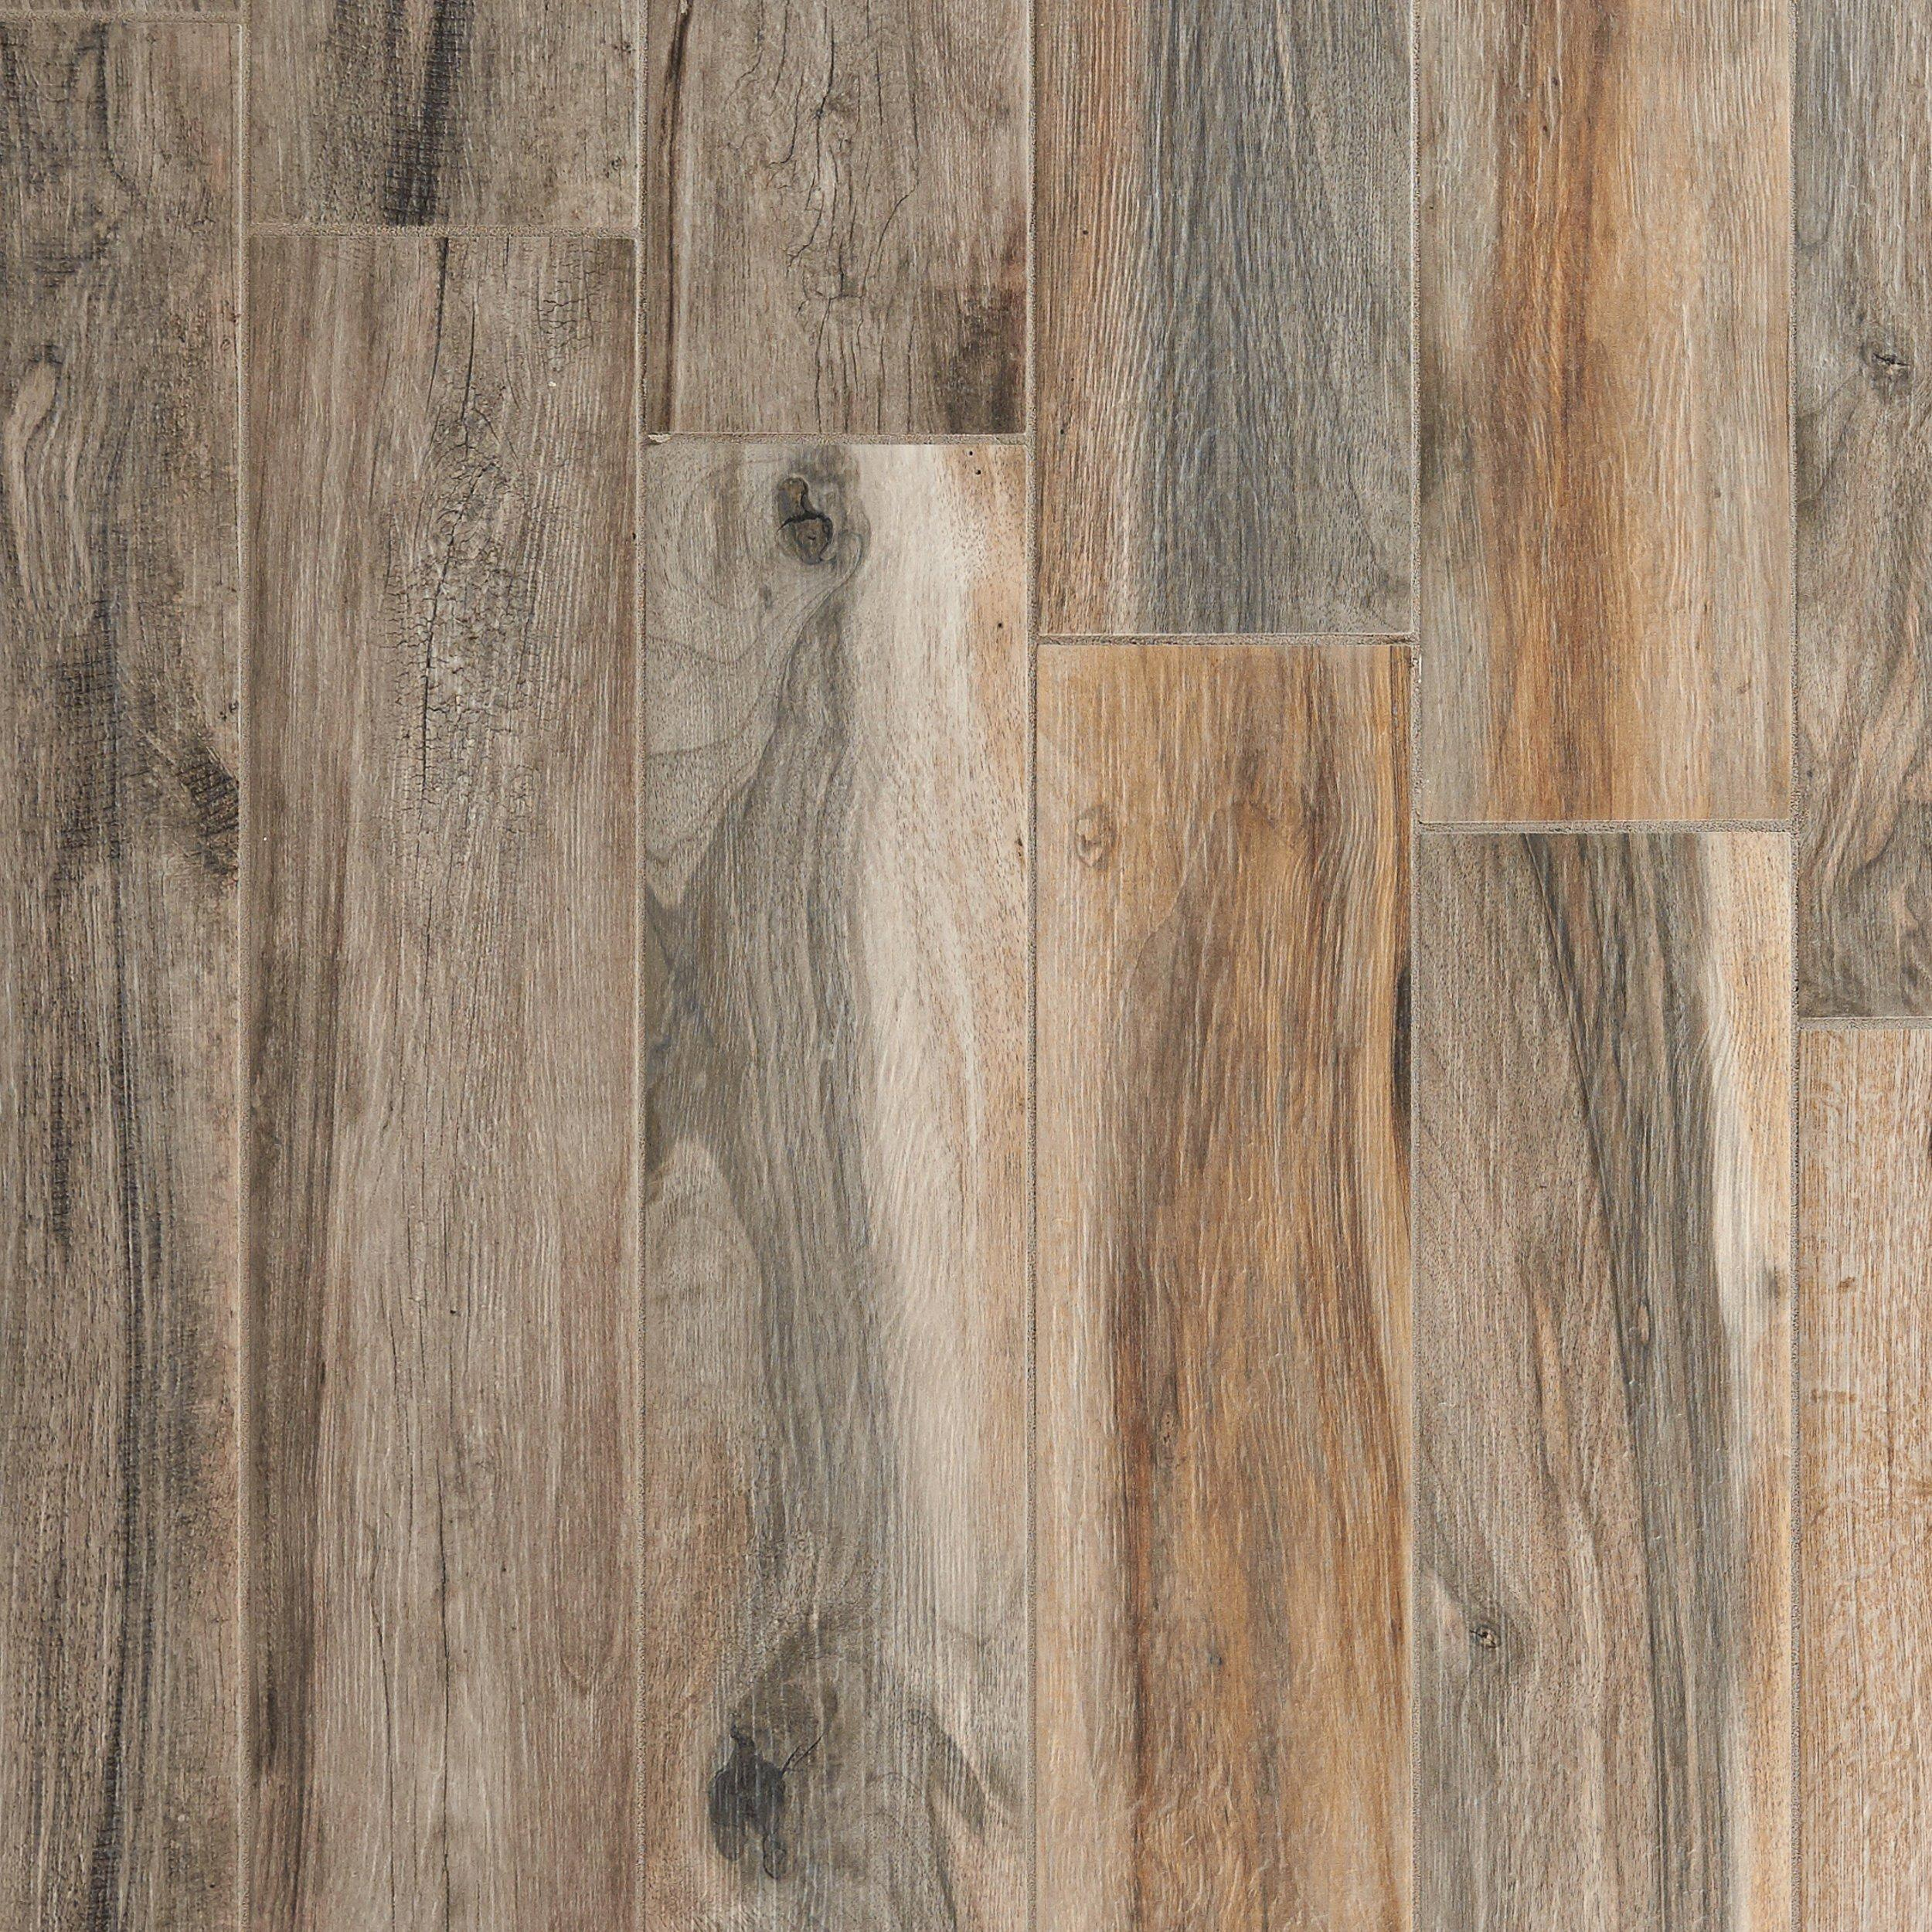 Wood Grain Porcelain Tile Bathroom Porcelanosa Floor Tiles Porcelanosa Tile Wood Grain Tile